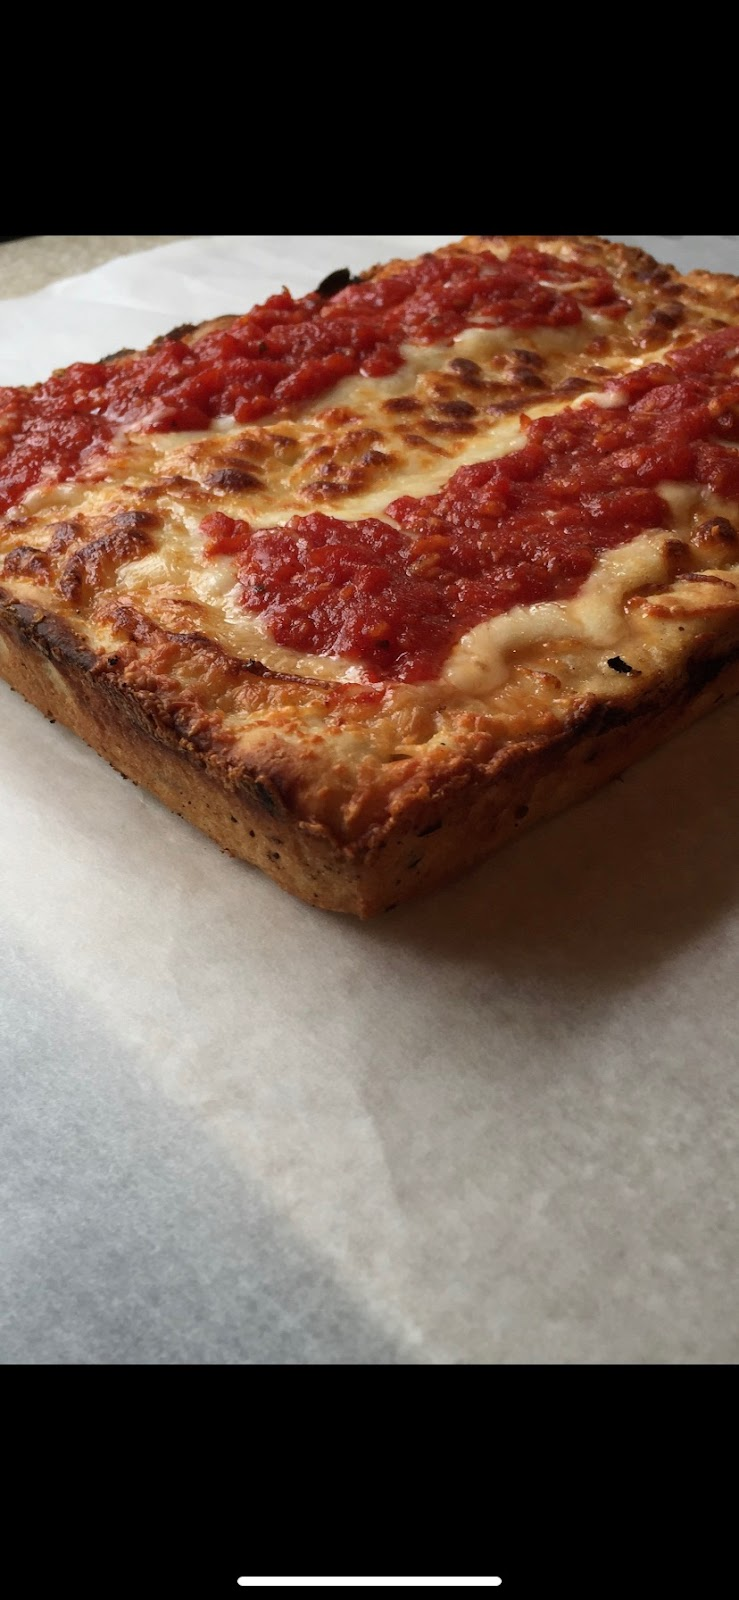 Detroit Pizza Joint   meal takeaway   3812 Skyline Blvd, Cape Coral, FL 33914, USA   2393478111 OR +1 239-347-8111